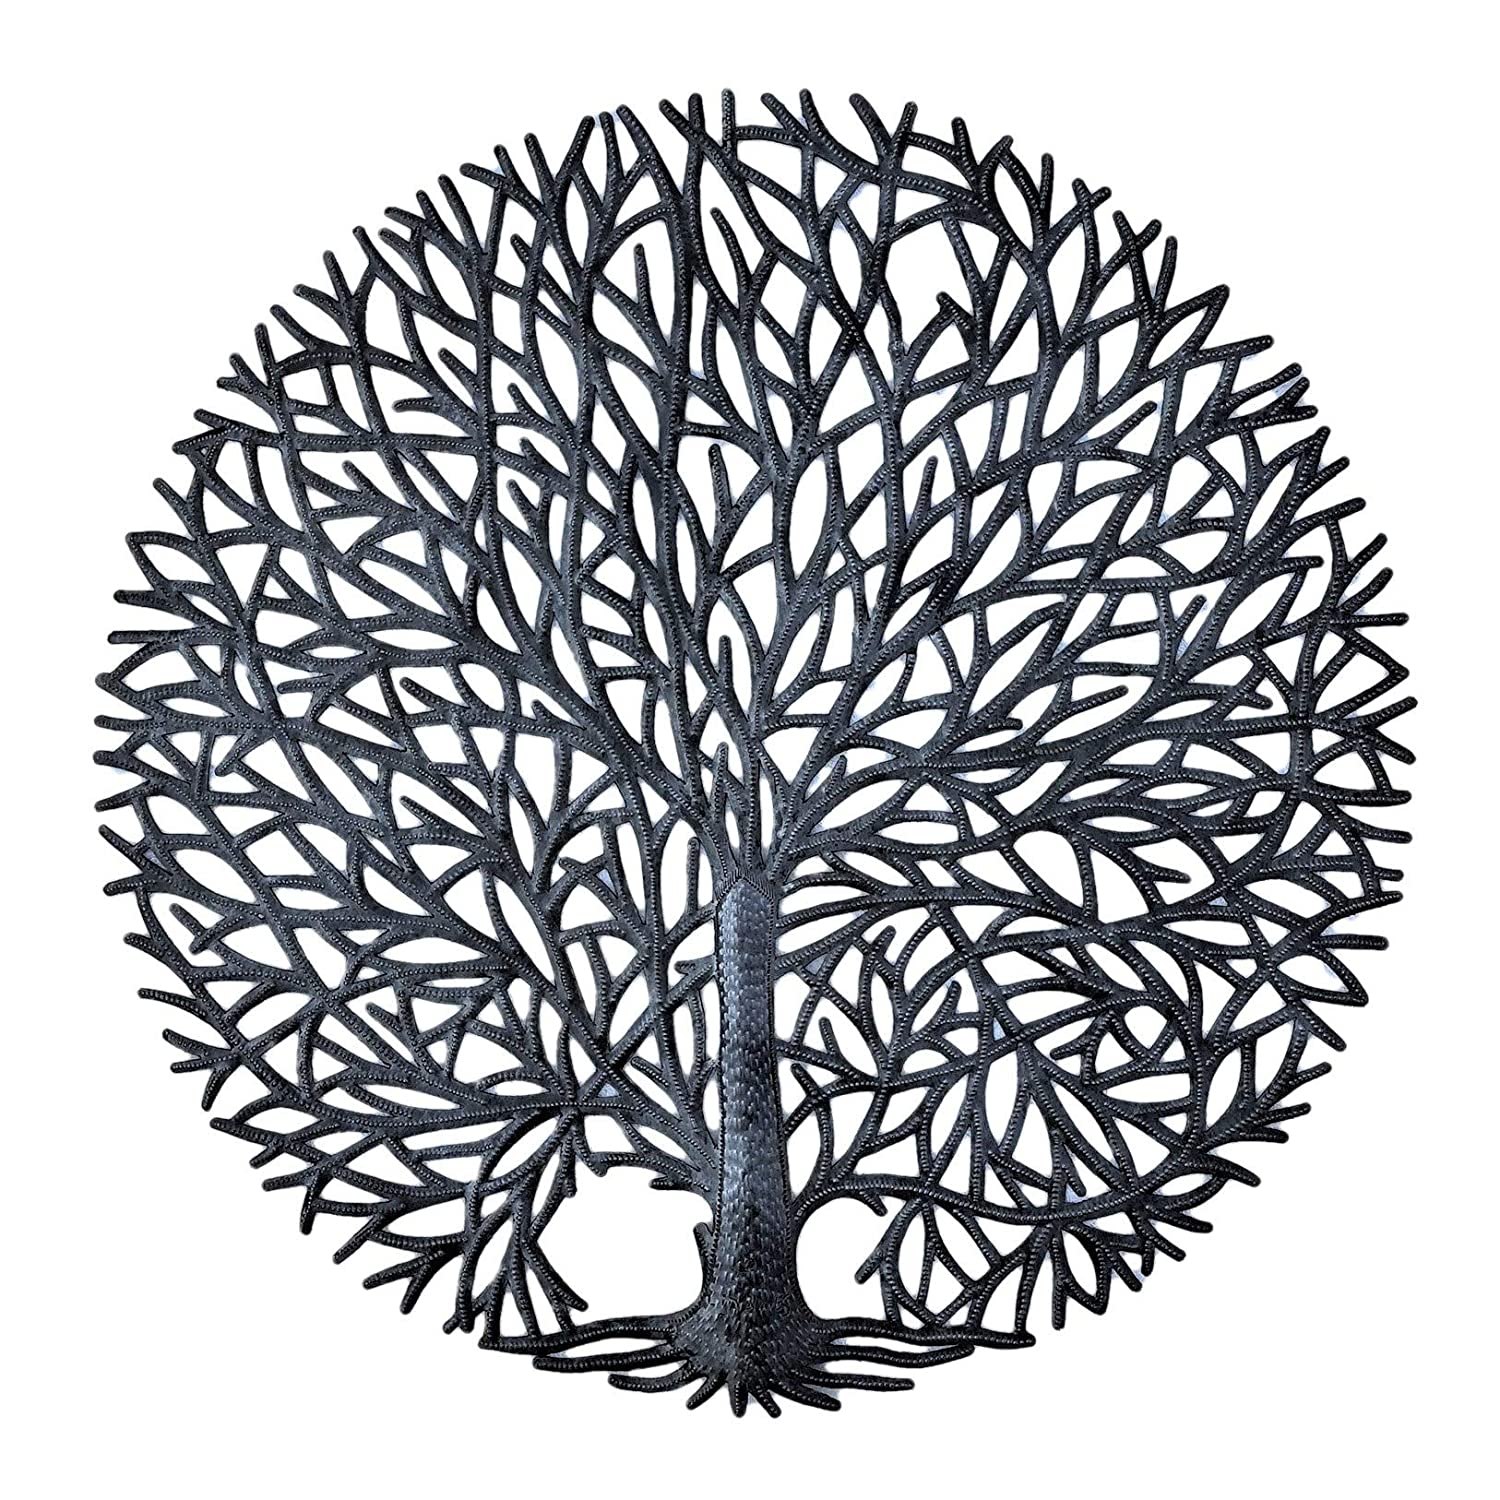 "Tree of Life Wall Art, Tranquility Nature Inspired Tree, Handmade in Haiti, Fair Trade, Decorative Wall Hanging Indoor or Outdoor 23"" Round"